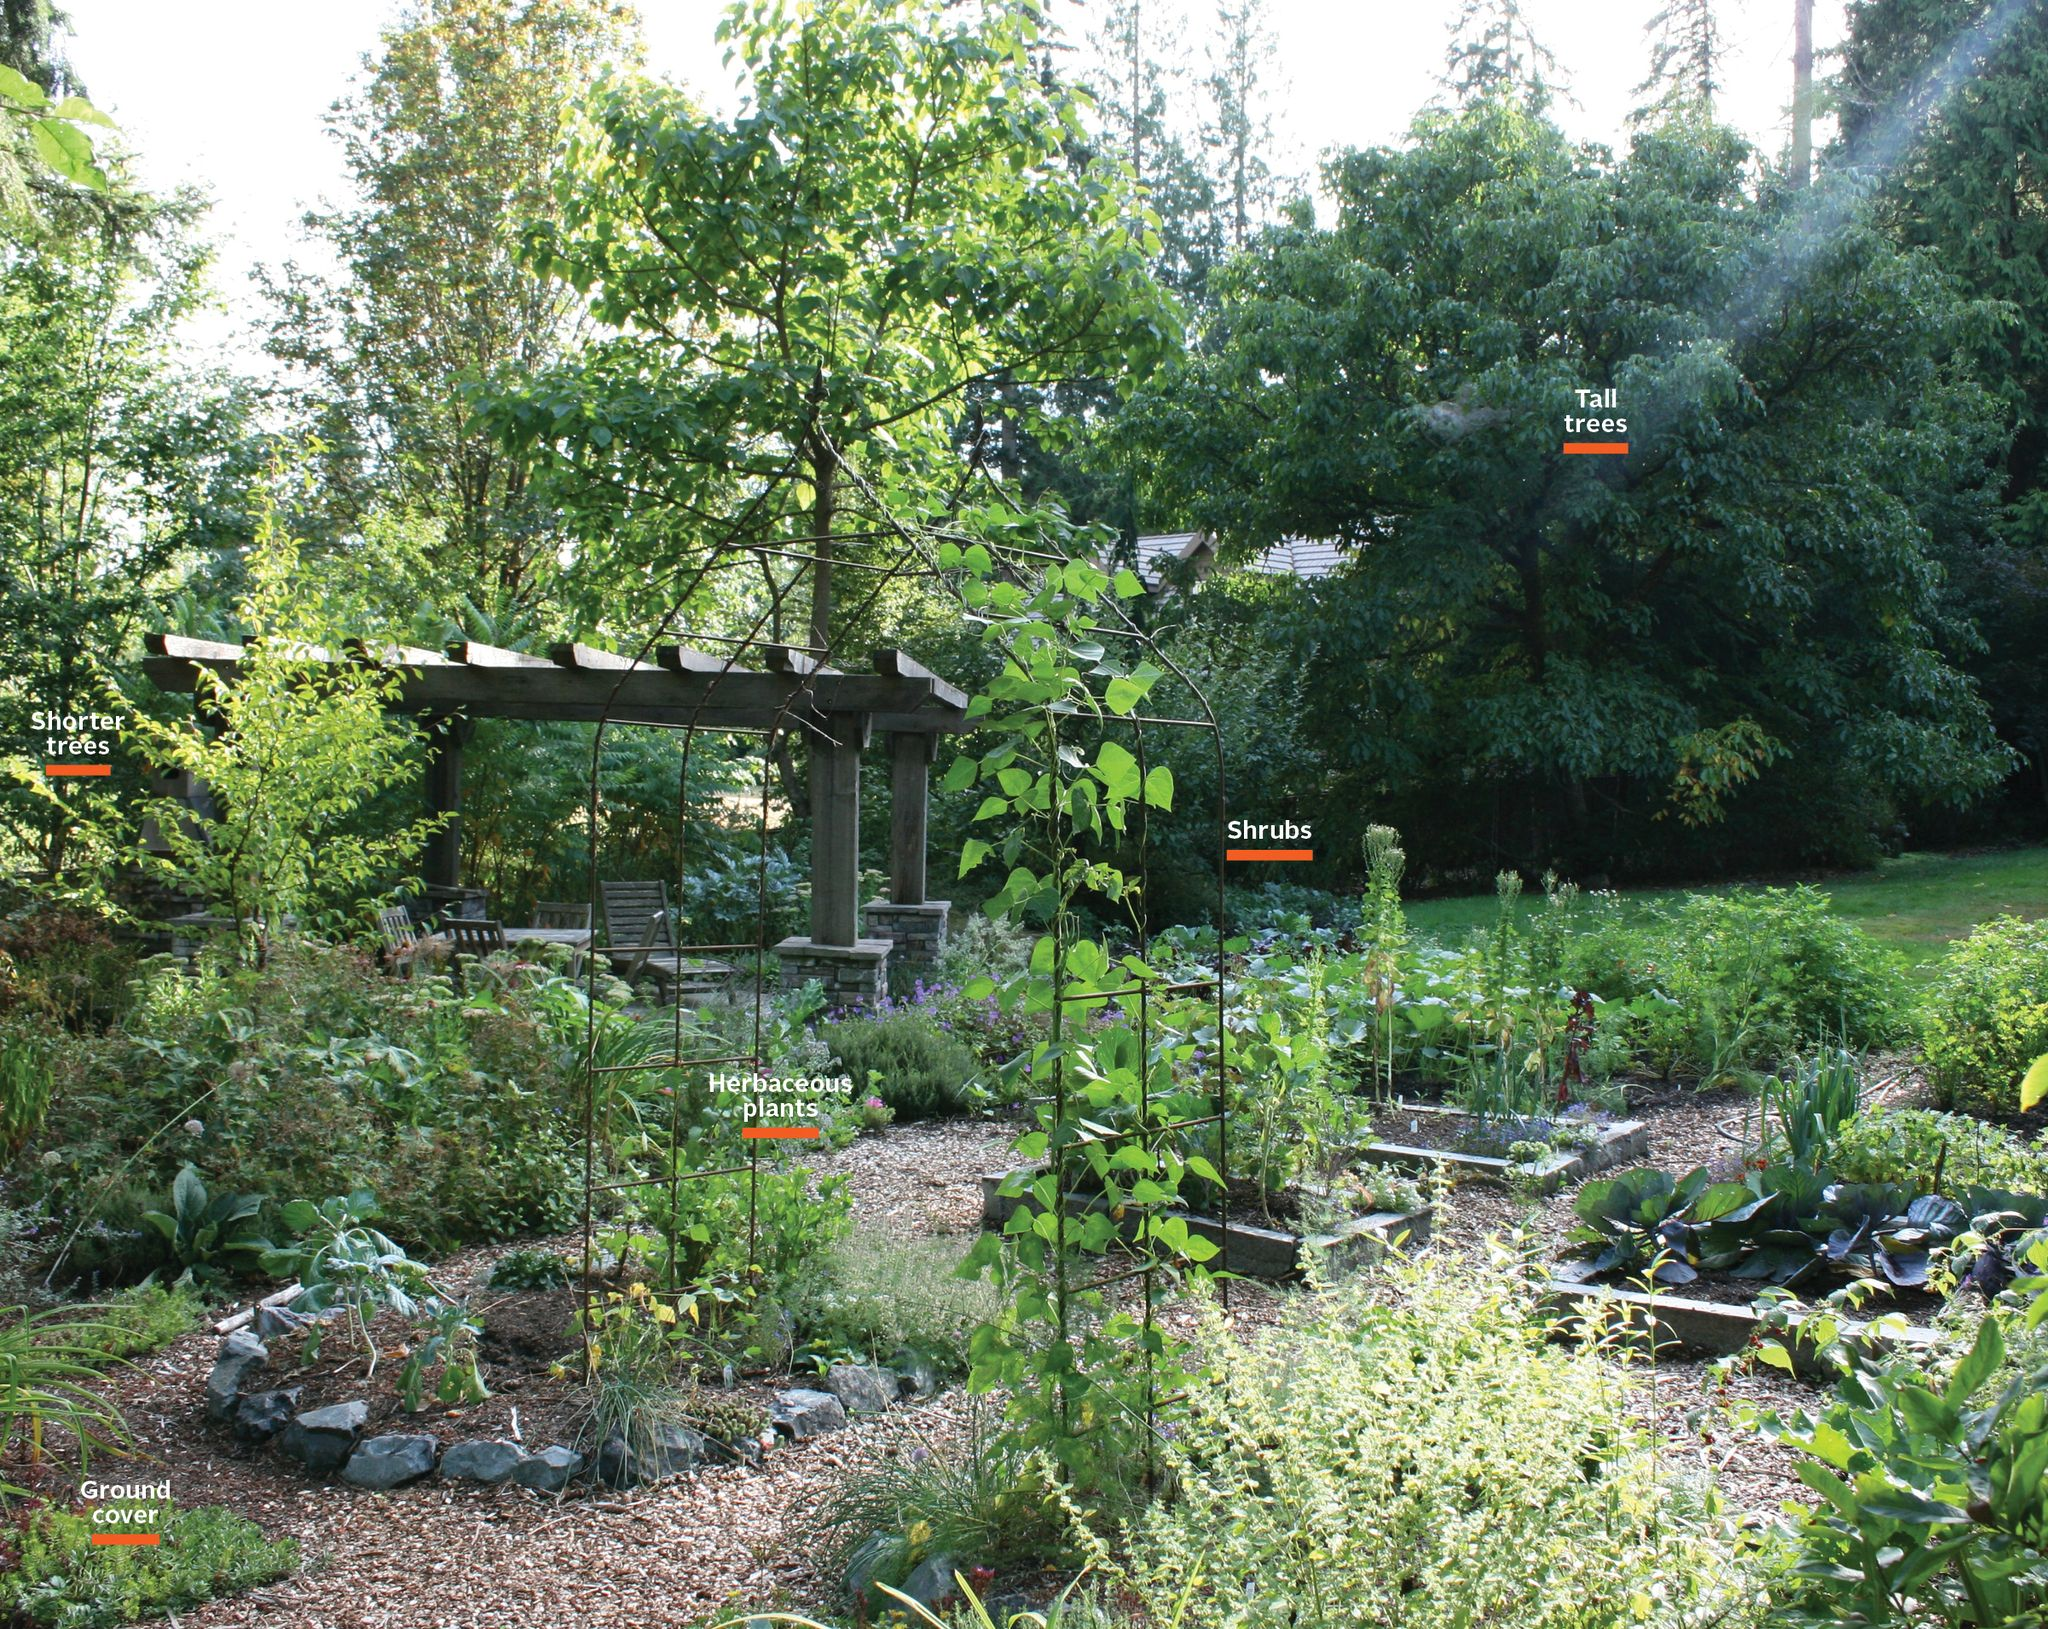 How To Plant a Garden That Takes Care of Itself